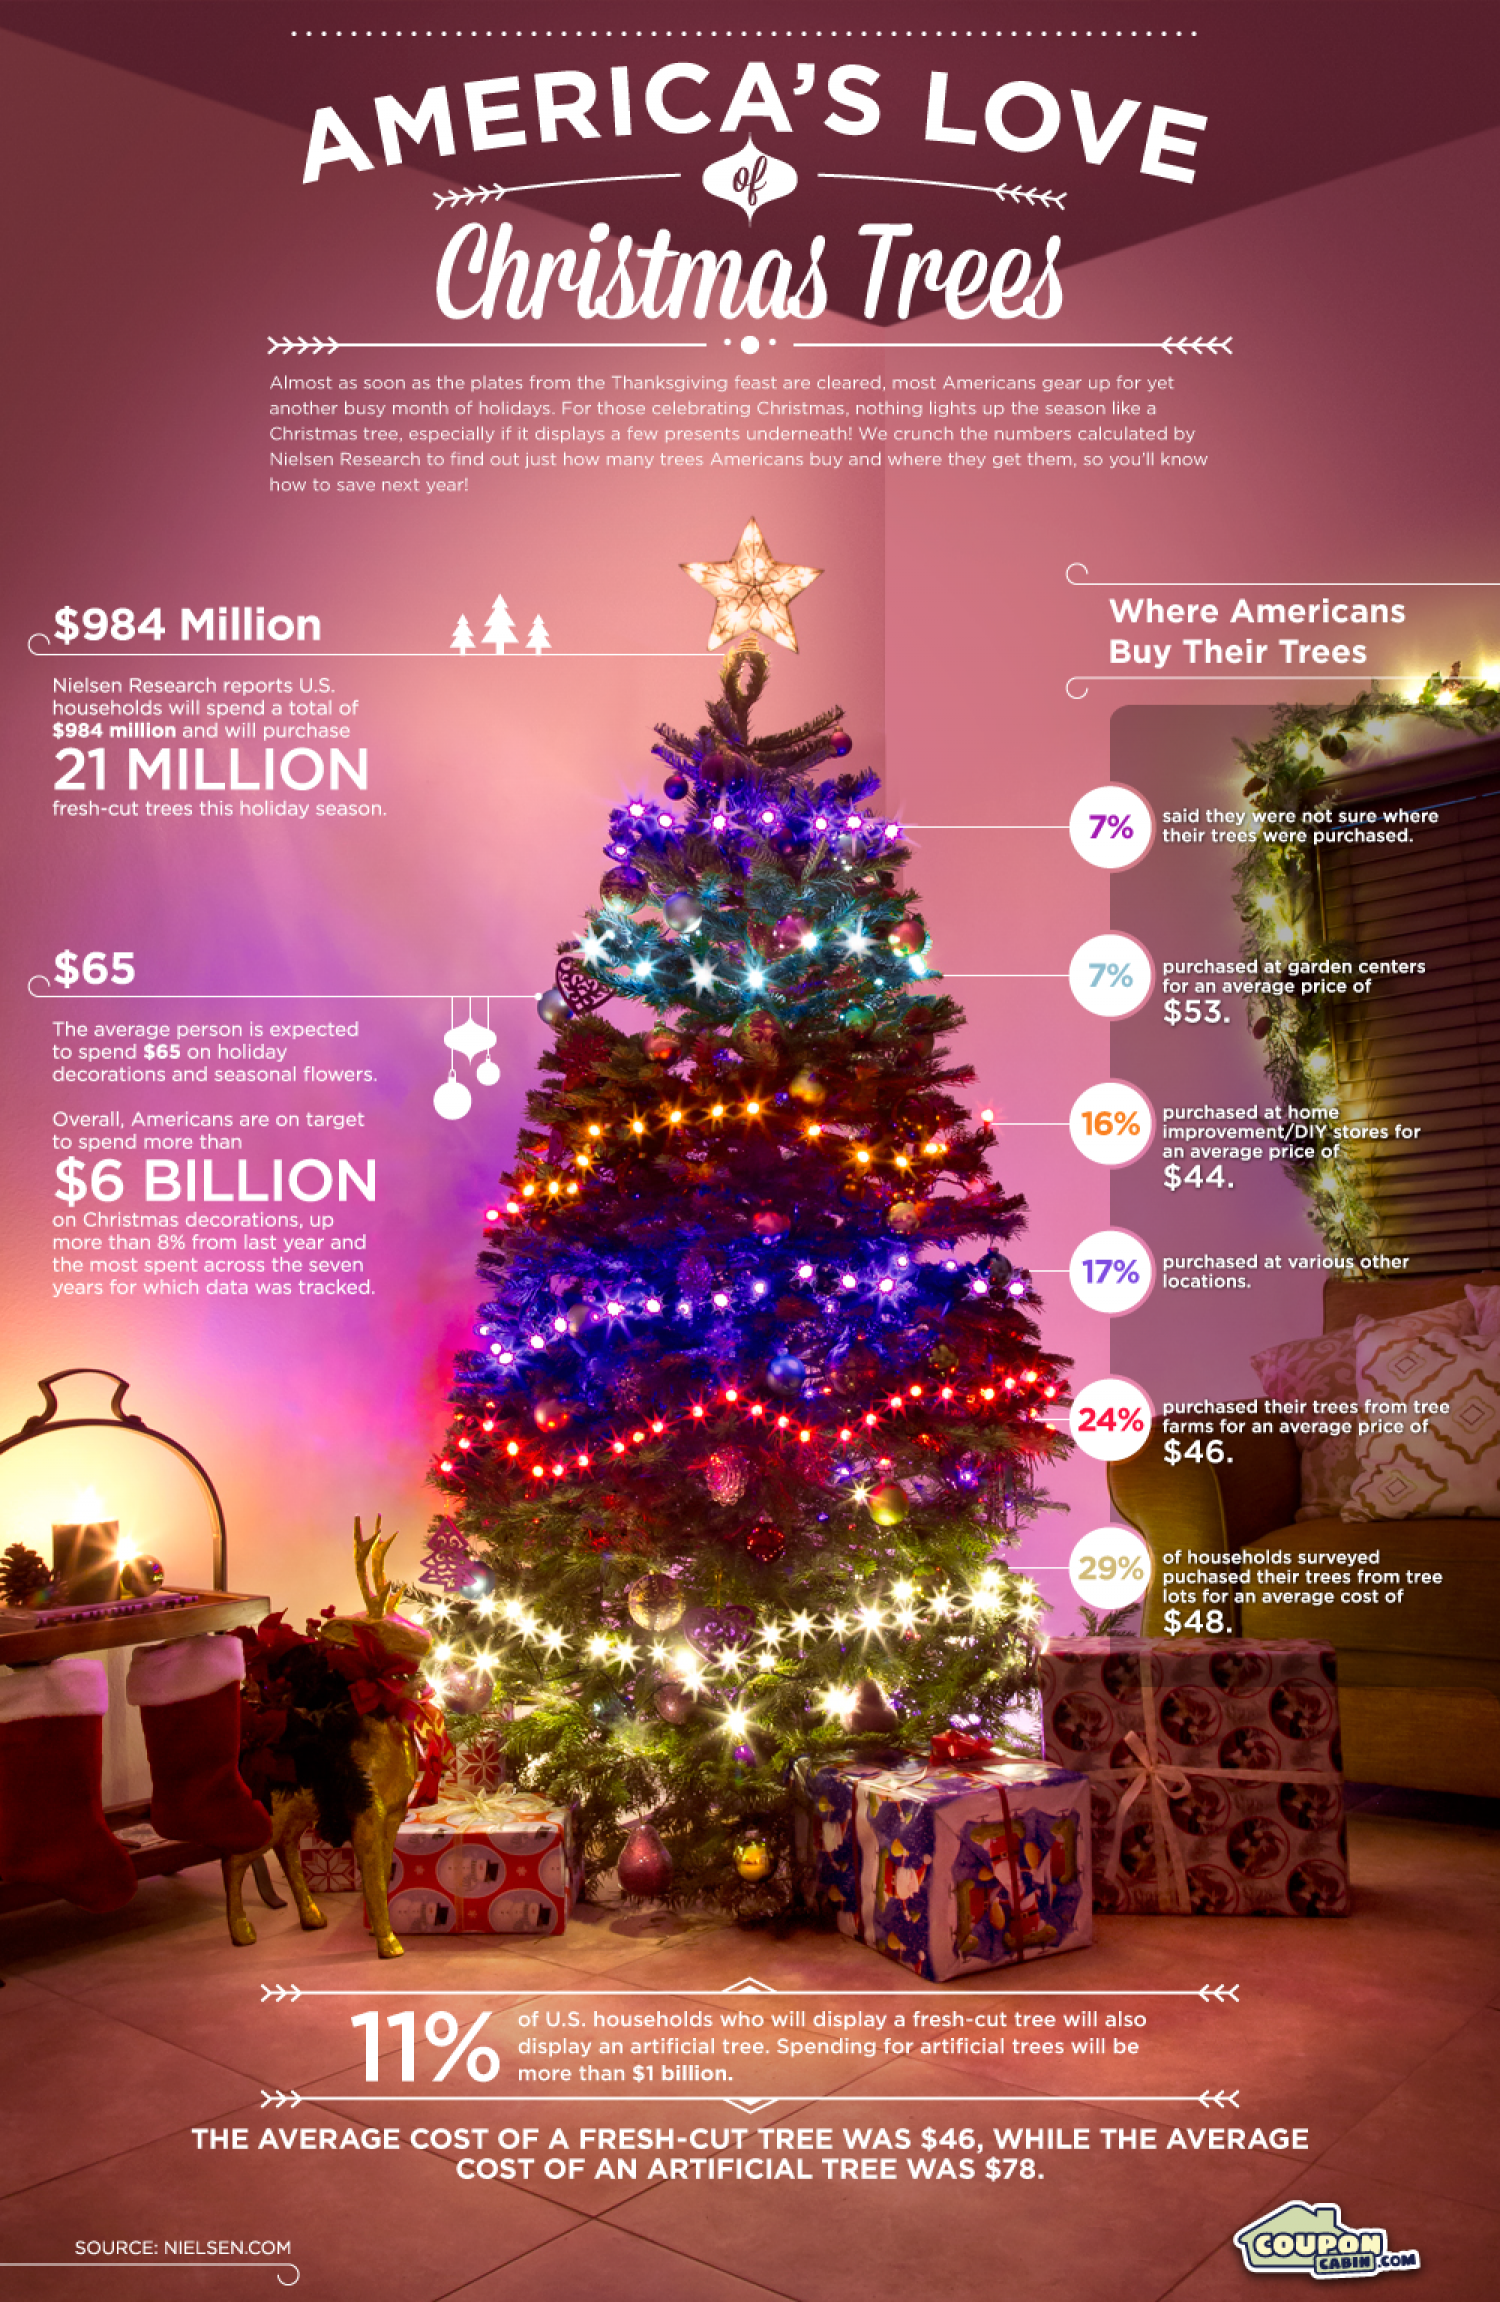 America's Love of Christmas Trees Infographic